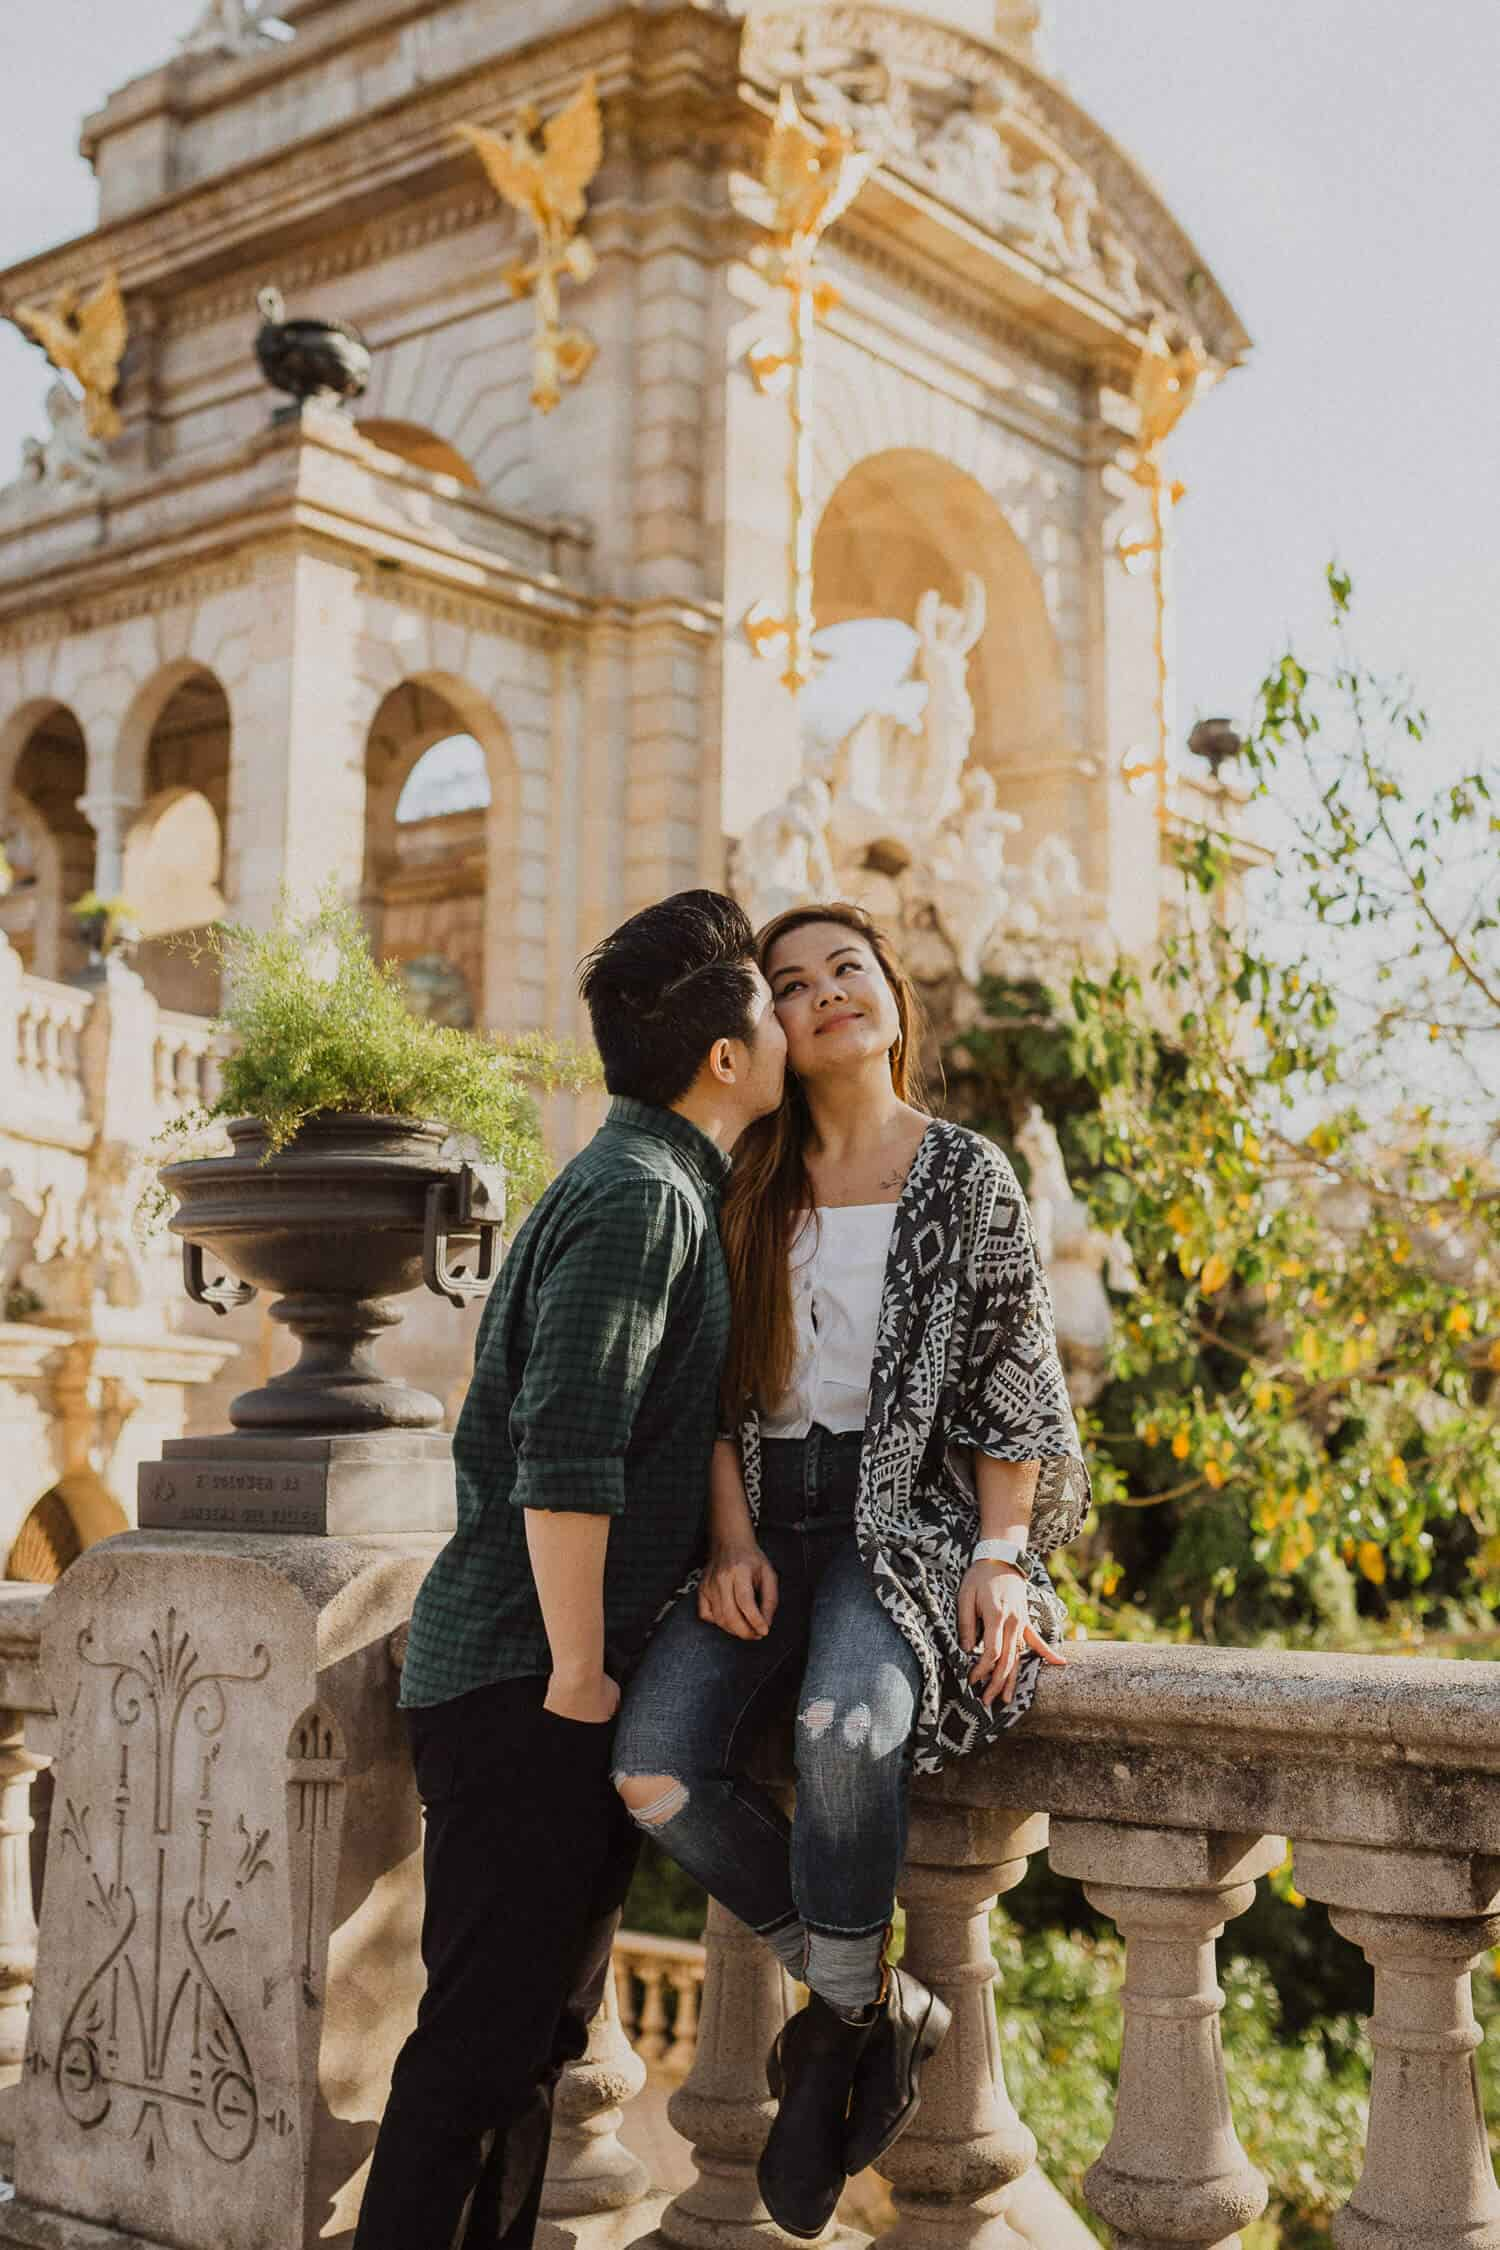 Couples photo session in Ciutadella Park, Barcelona